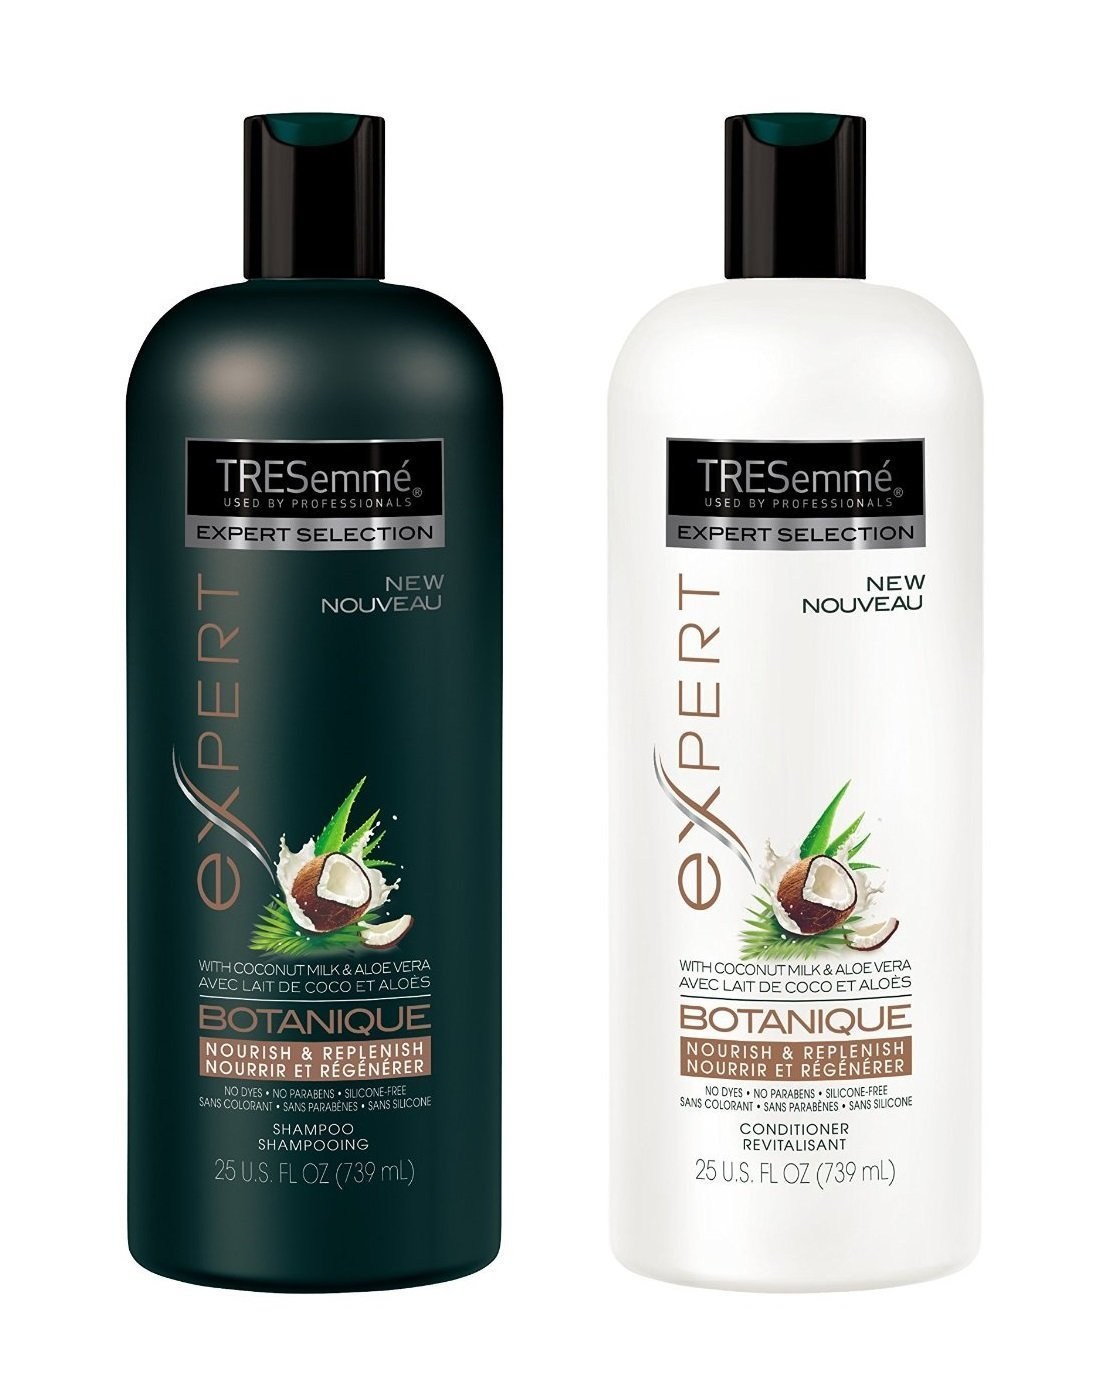 TRESemme Botanique Nourish and Replenish, Shampoo and Conditioner Duo Set 25 Ounce Bottles by TRESemme